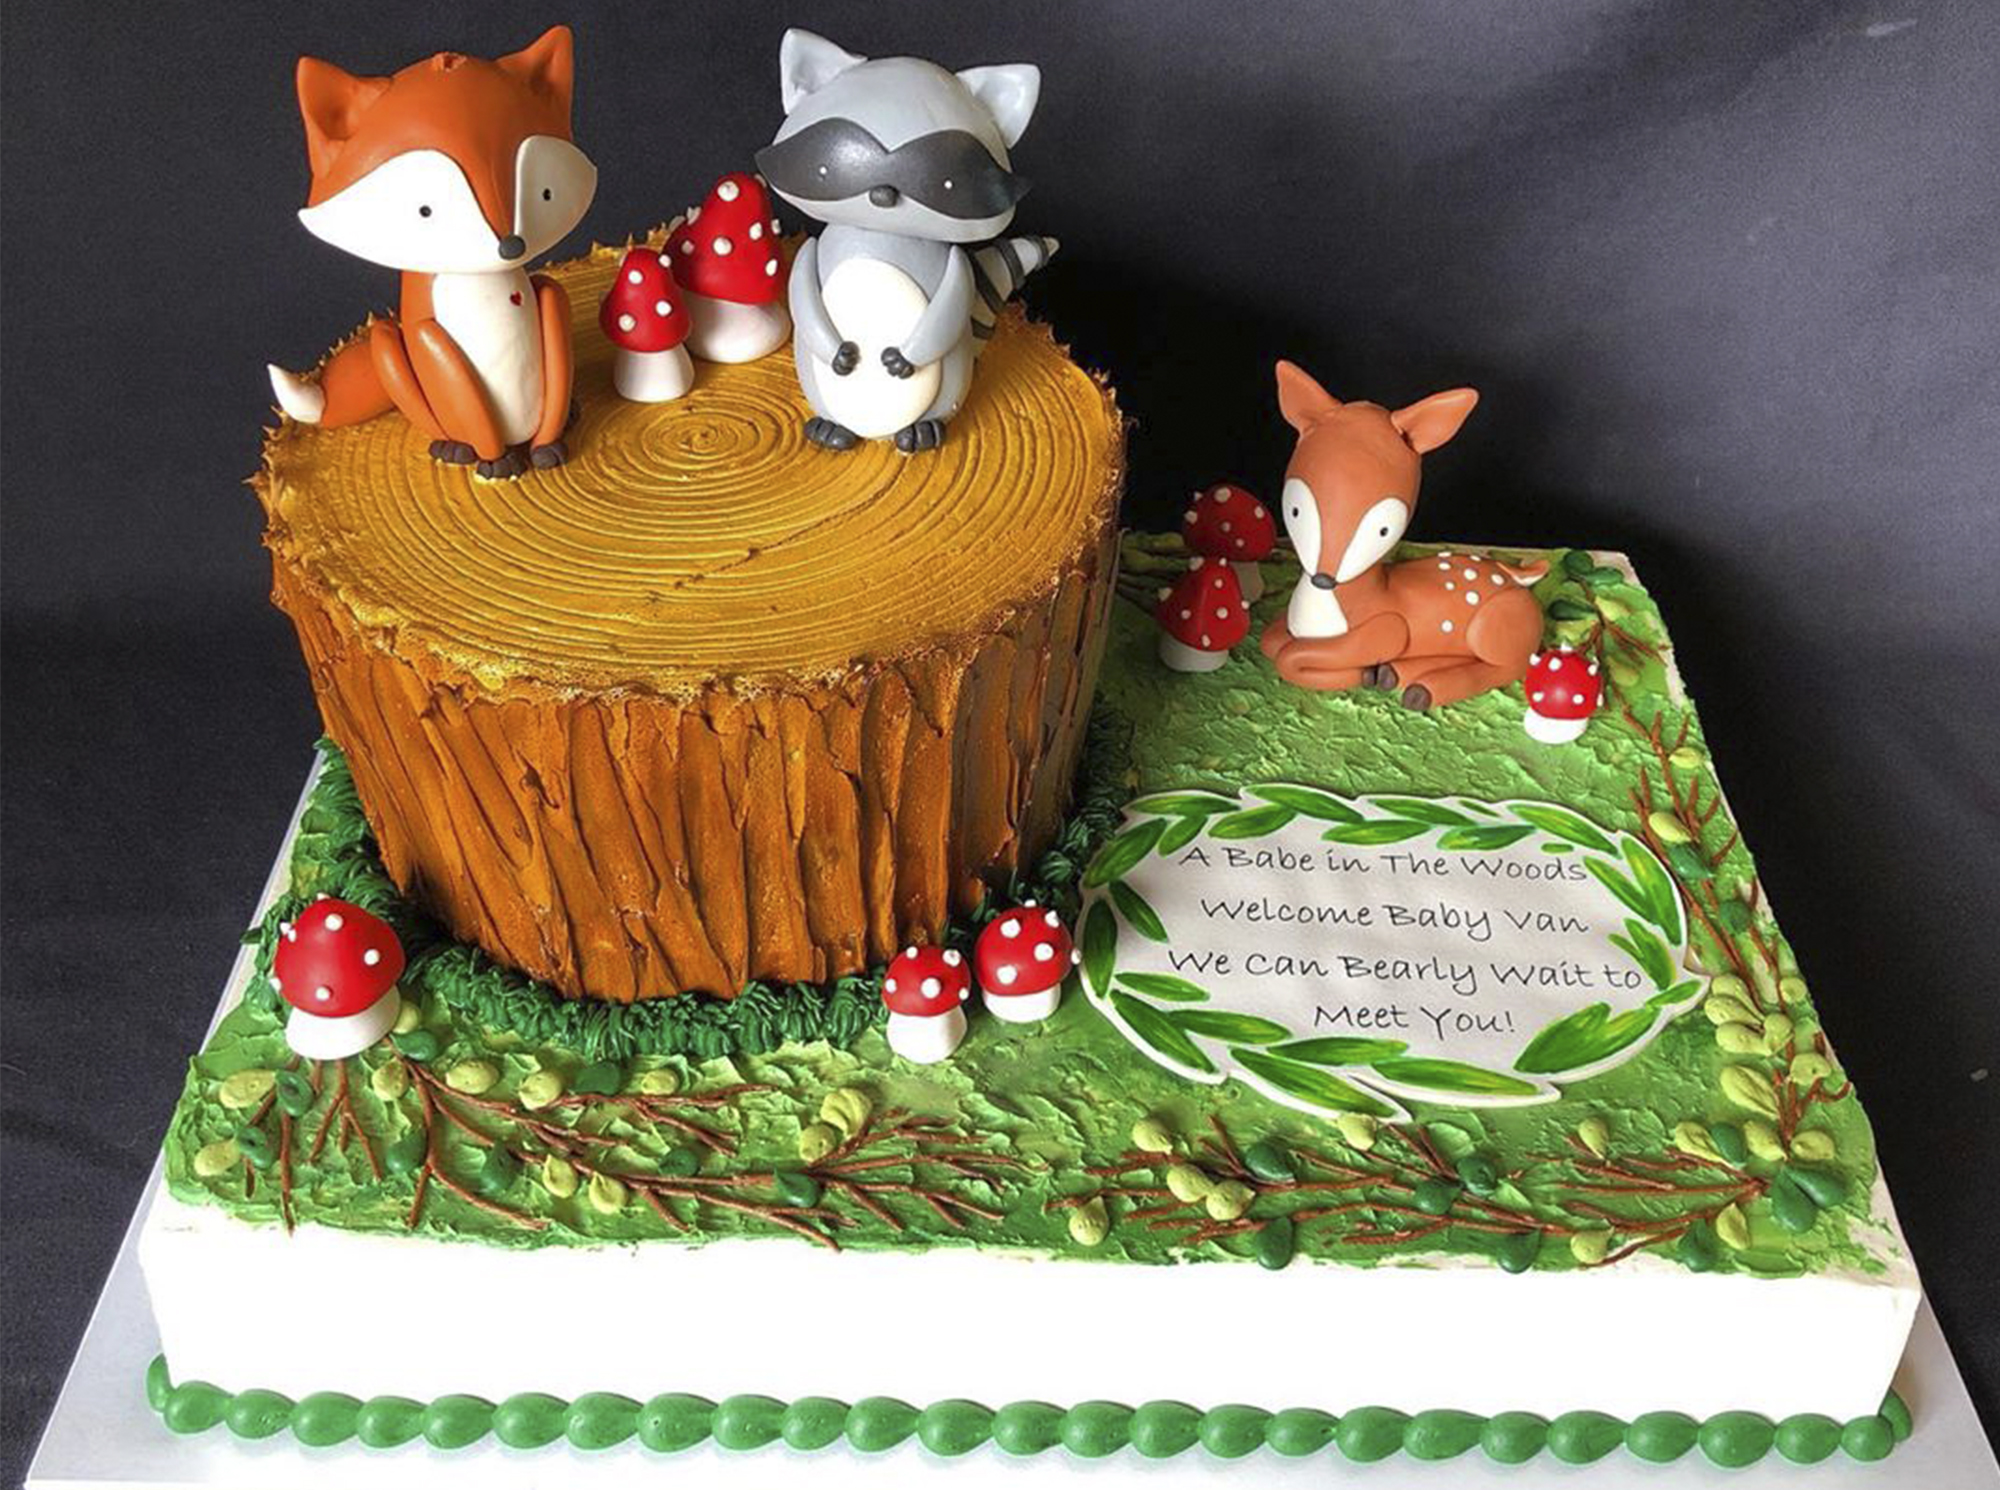 Fancy forst cake with foxes and mushrooms posing on a log